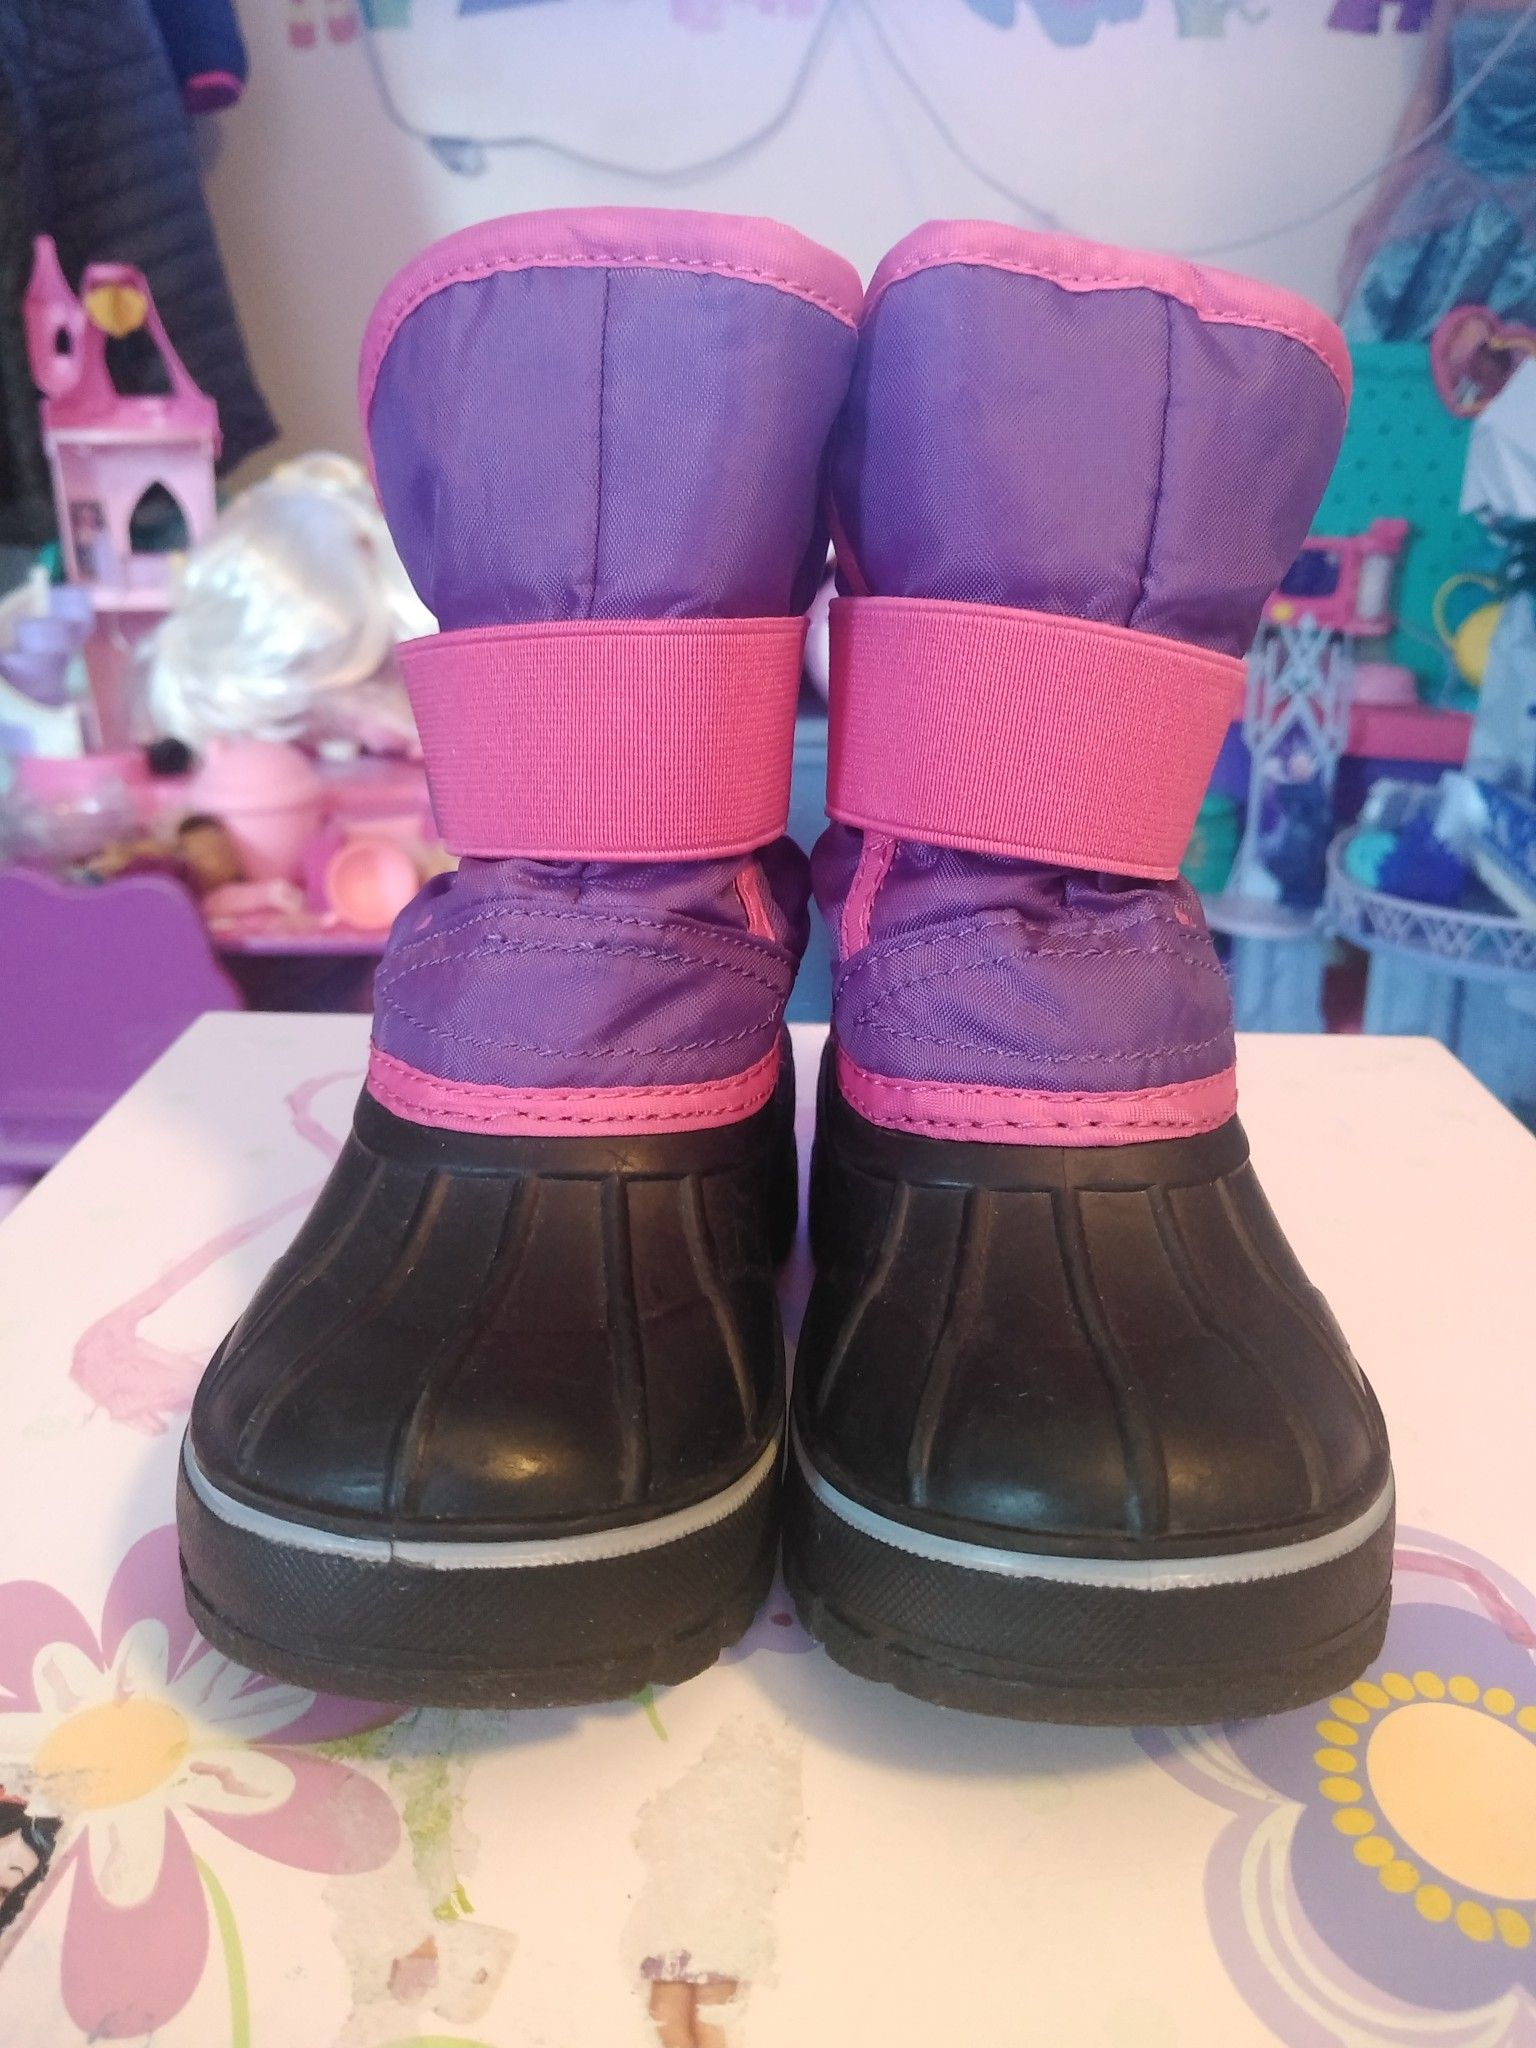 LILY & DAN Girls Toddler Winter Snow Boots Pink Purple Size 7/8 Toddler like new